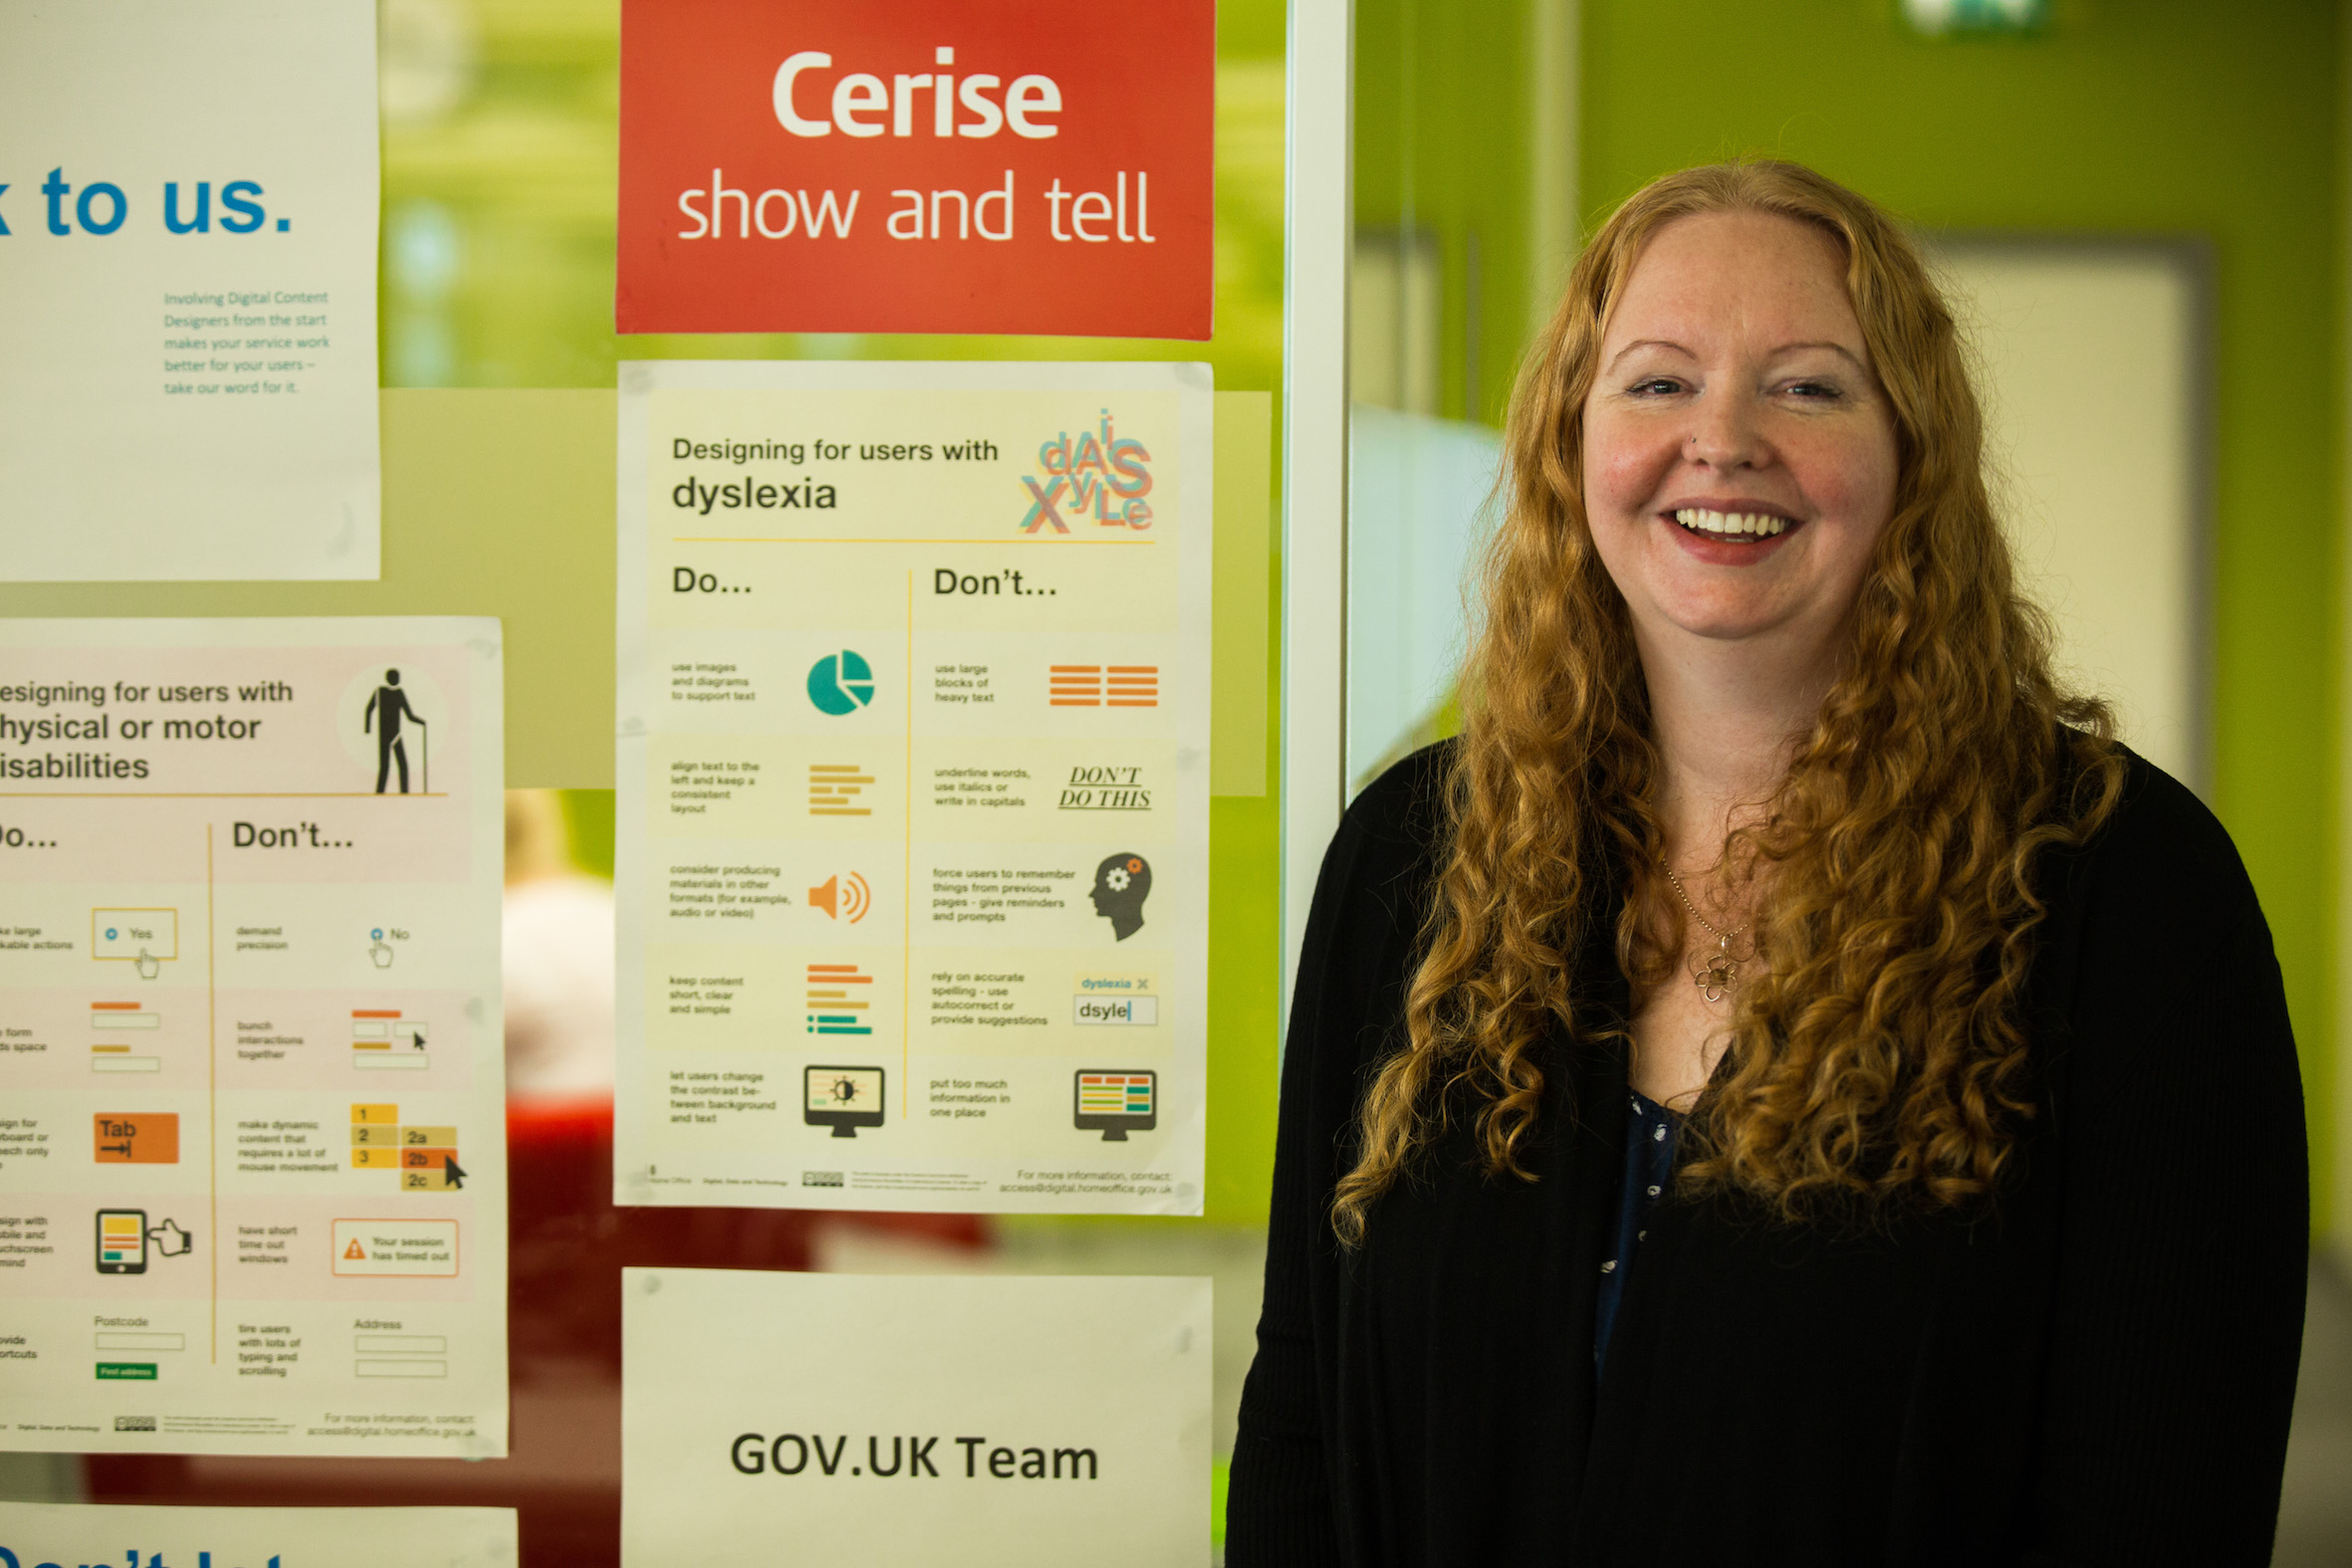 Jane standing next to a poster that has advice on designing for people with dyslexia